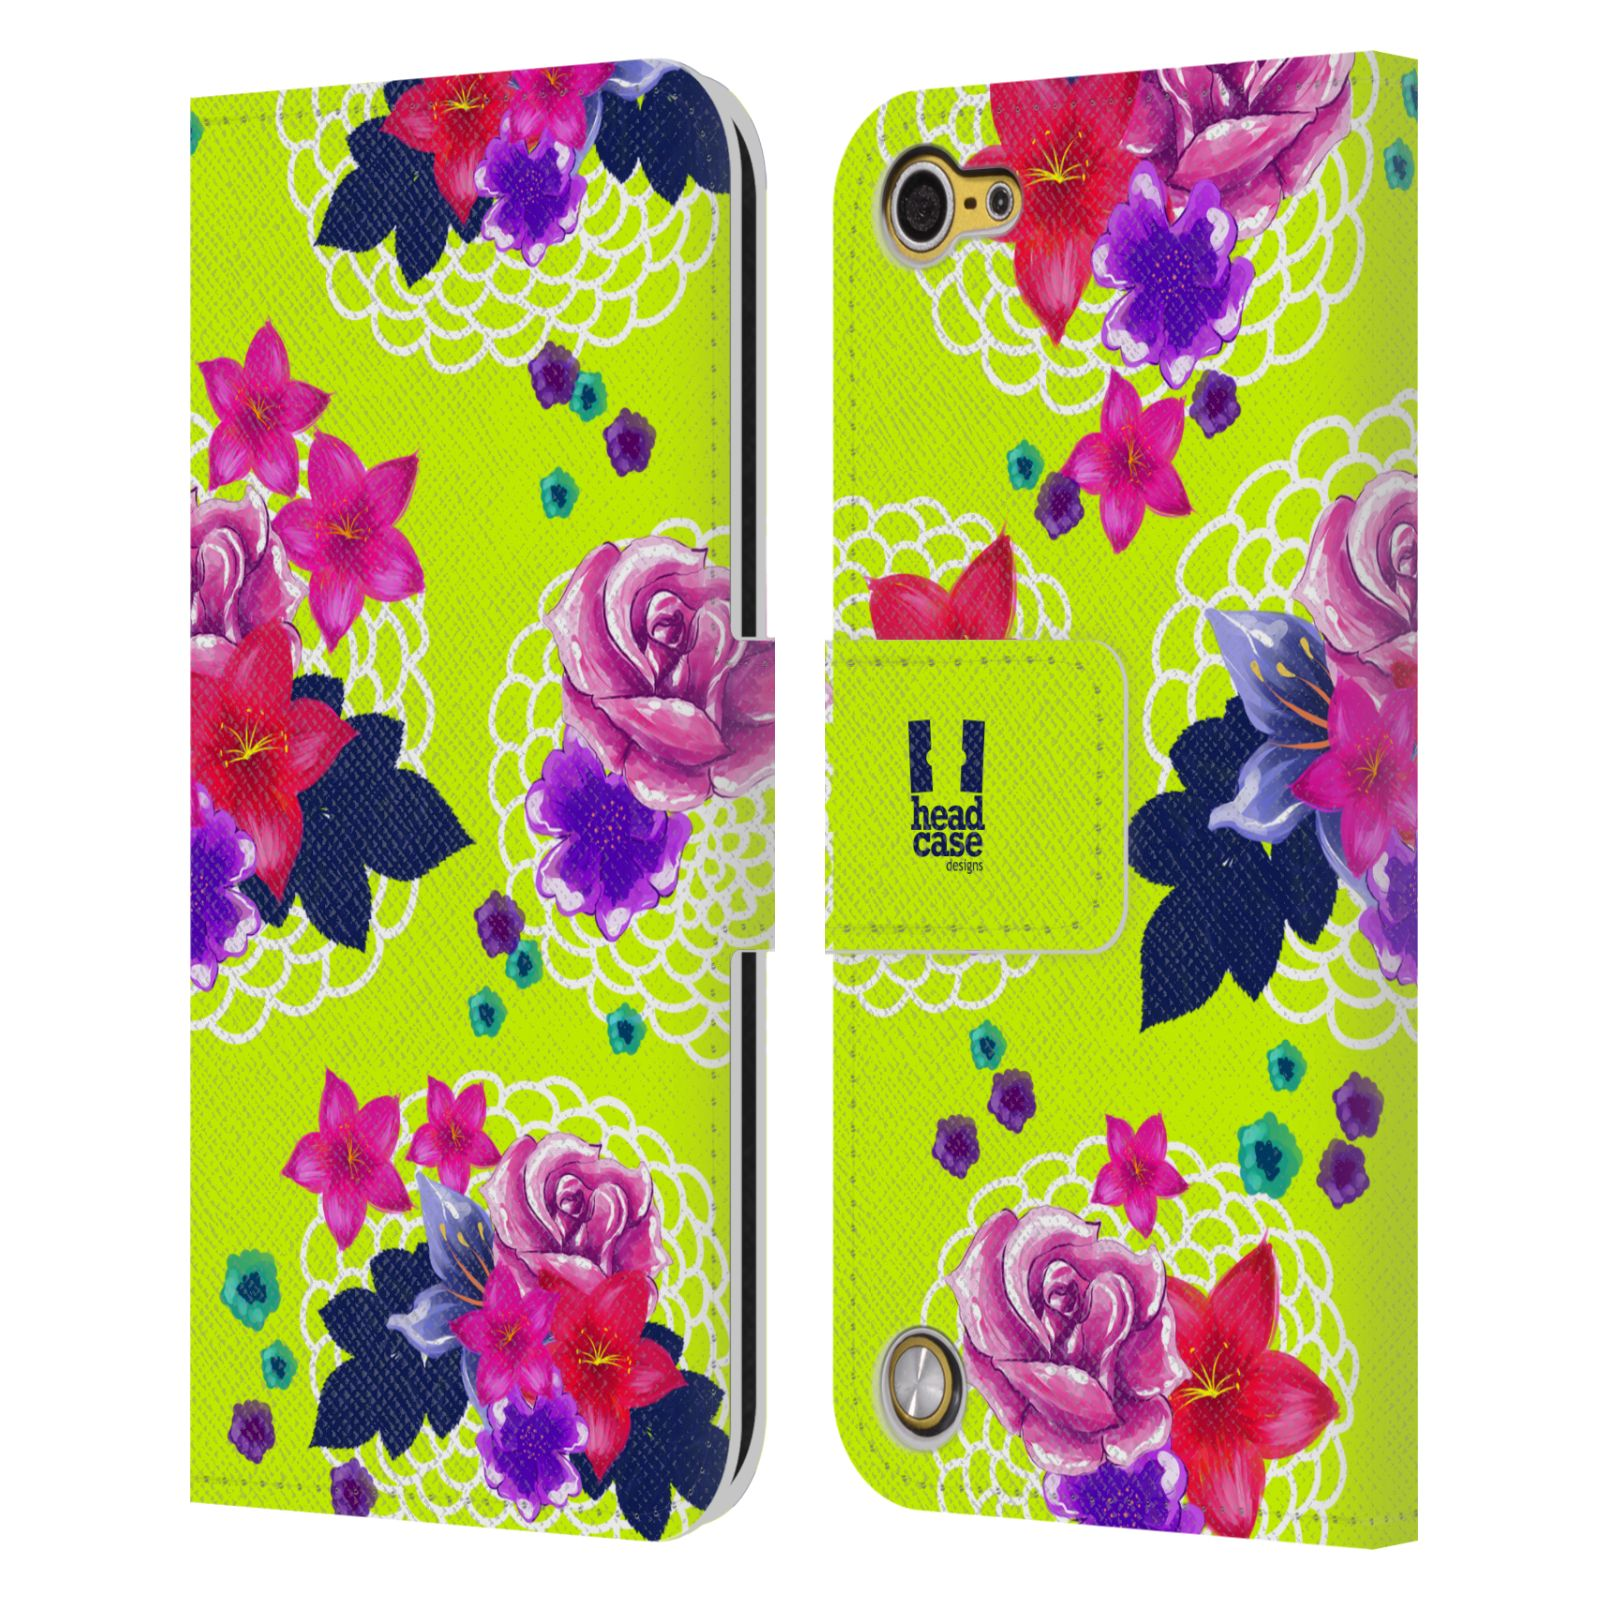 HEAD CASE DESIGNS PAINTED FLOWERS LEATHER BOOK WALLET CASE FOR APPLE iPOD TOUCH